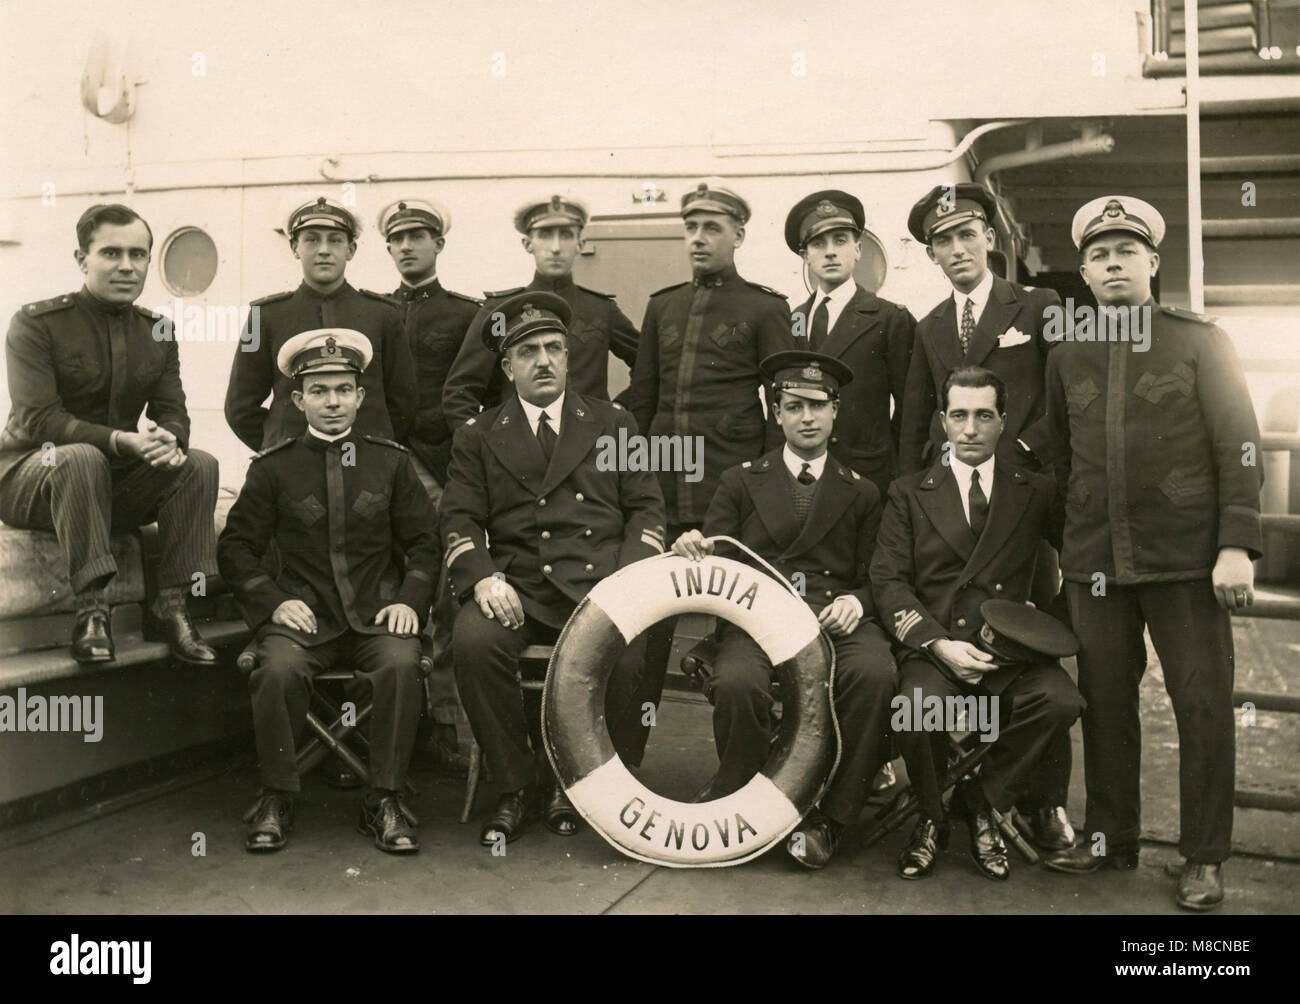 The commander and crew of the motorship India, Genova, Italy 1928 - Stock Image